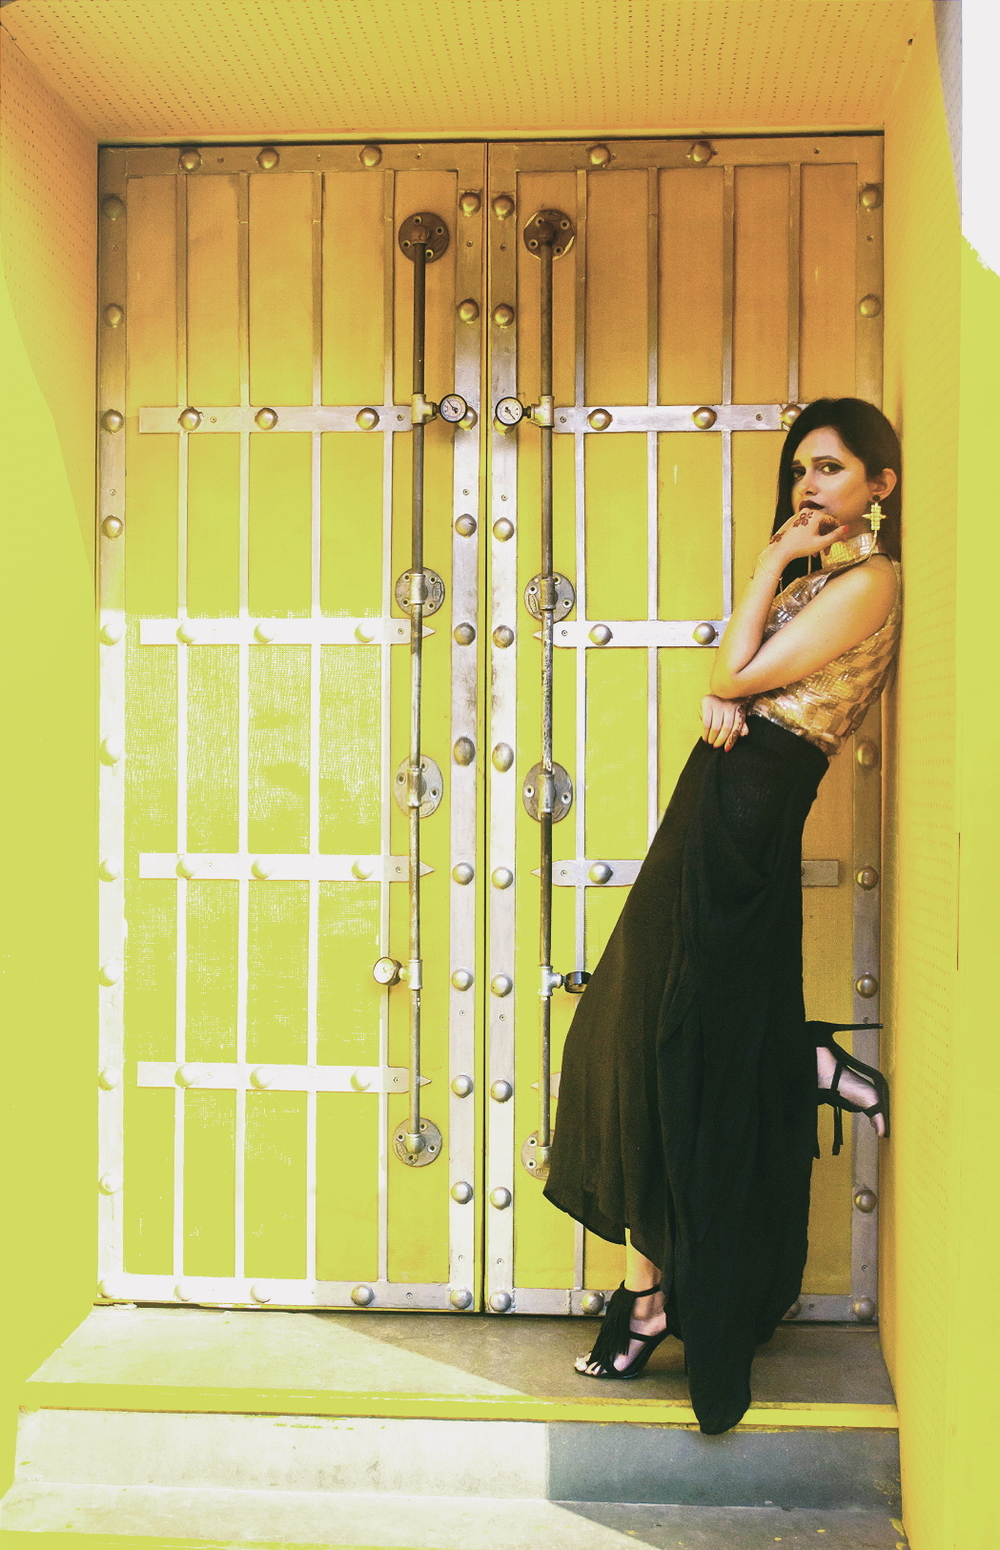 The-Chic-Armoire-by-Nidhi-Kunder-Light-House-Cafe-1